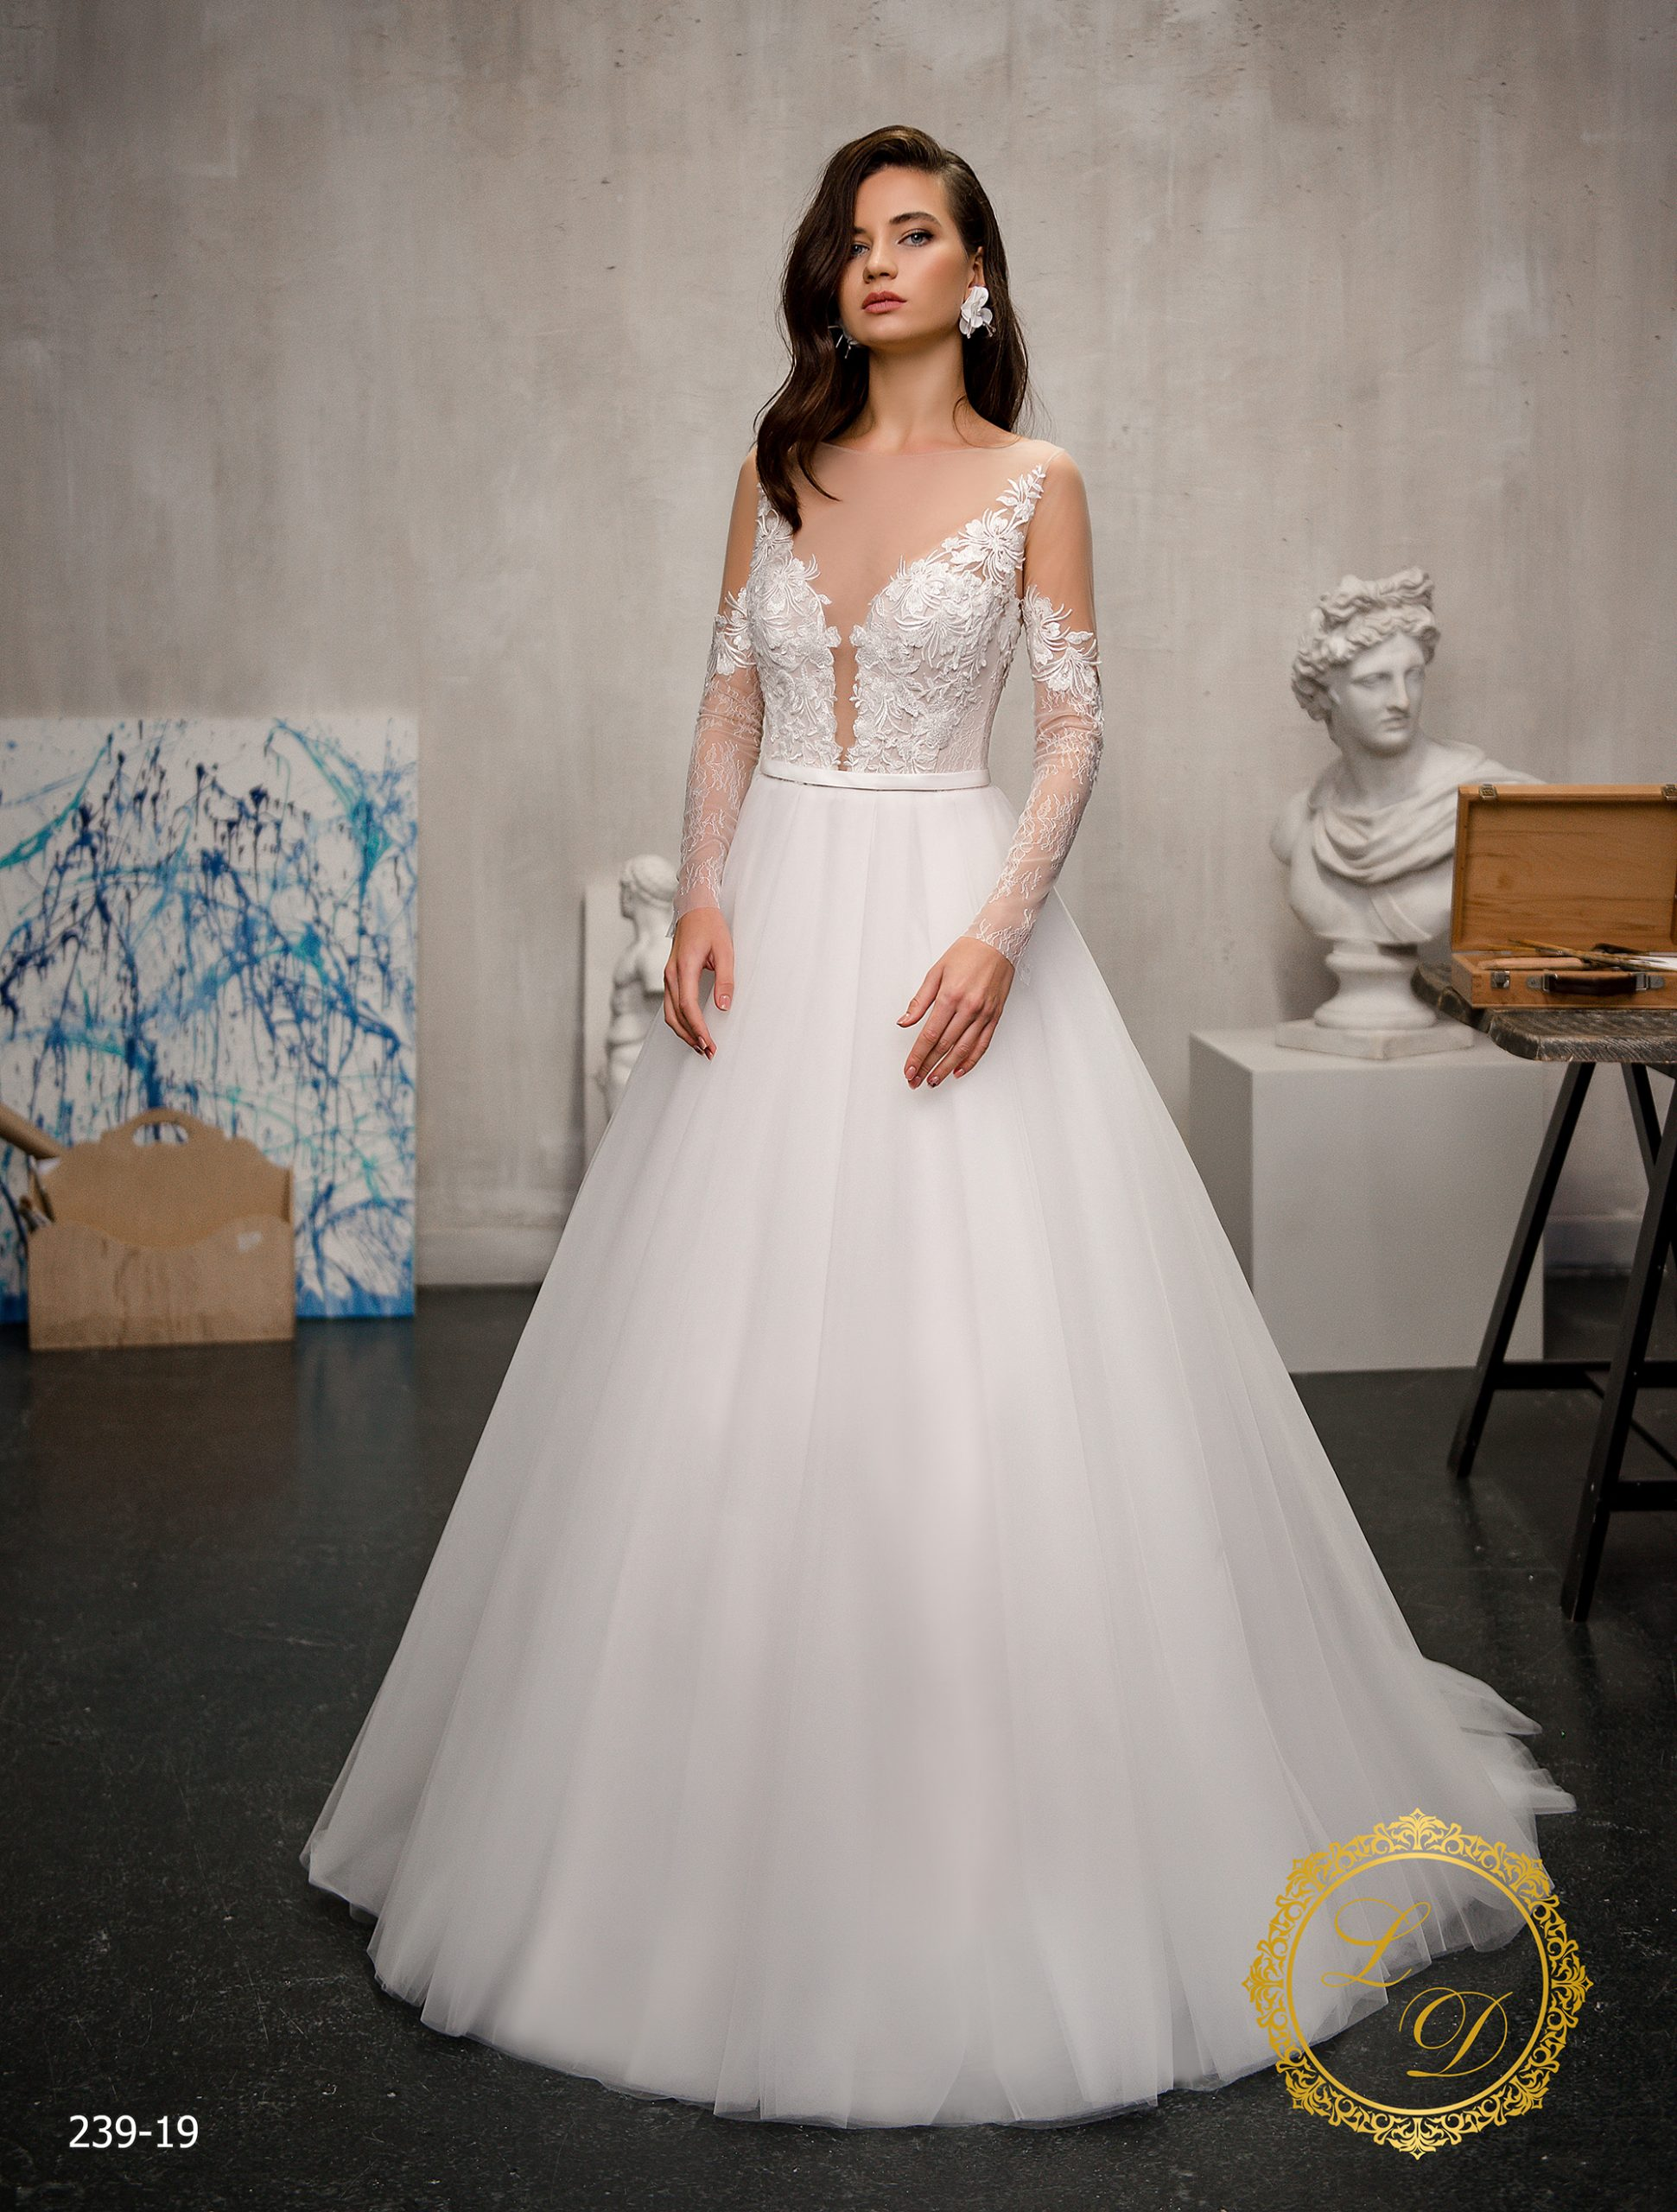 wedding-dress-239-19-1